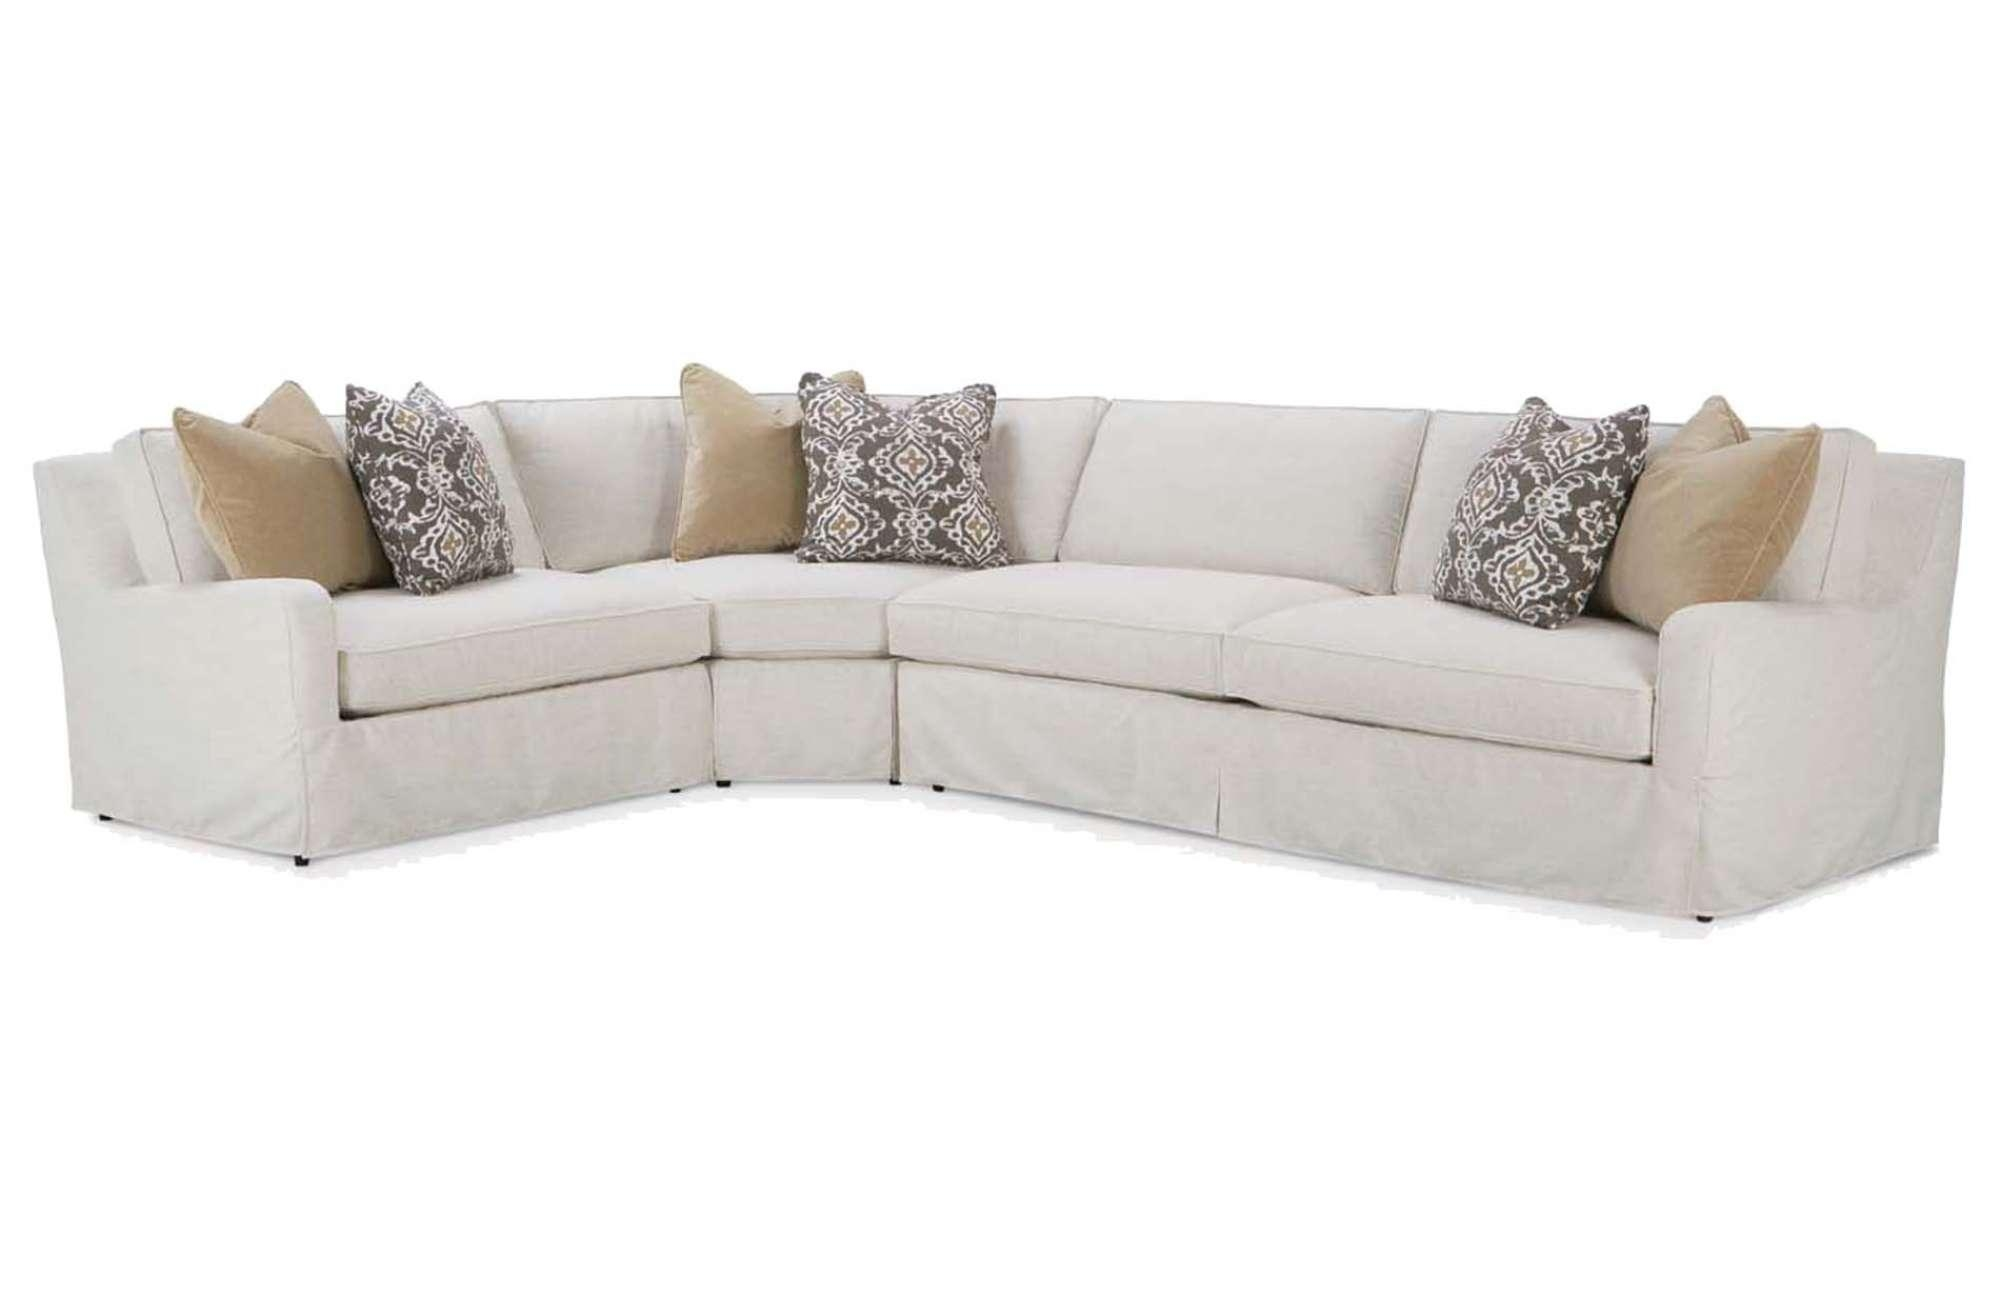 Havens Slipcover Sectionalrobin Bruce intended for Slipcovers For Sectional Sofas With Recliners